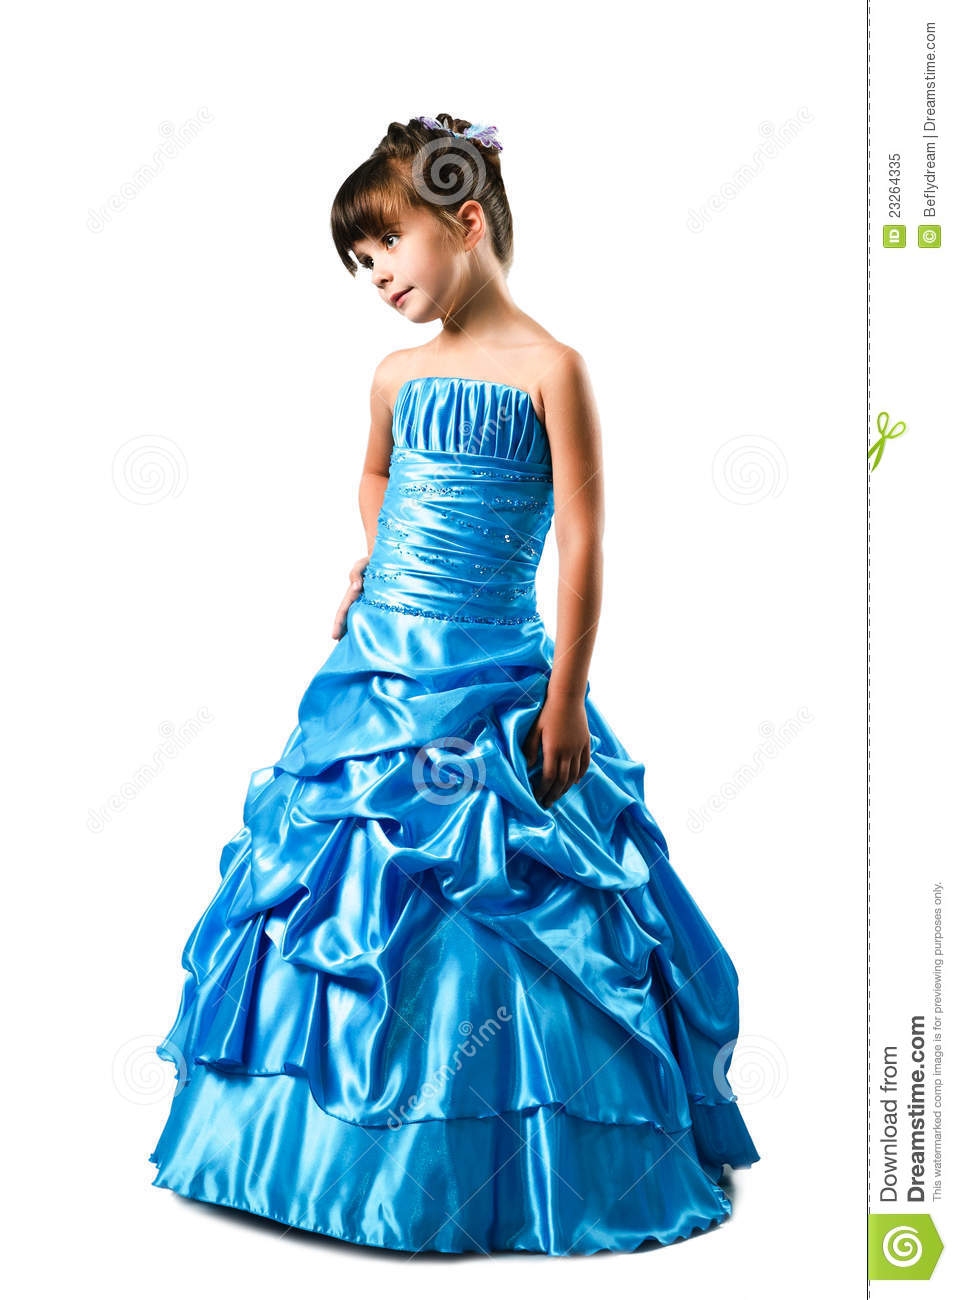 Little Girl In Fancy Dress Isolated On White Royalty Free Stock ...